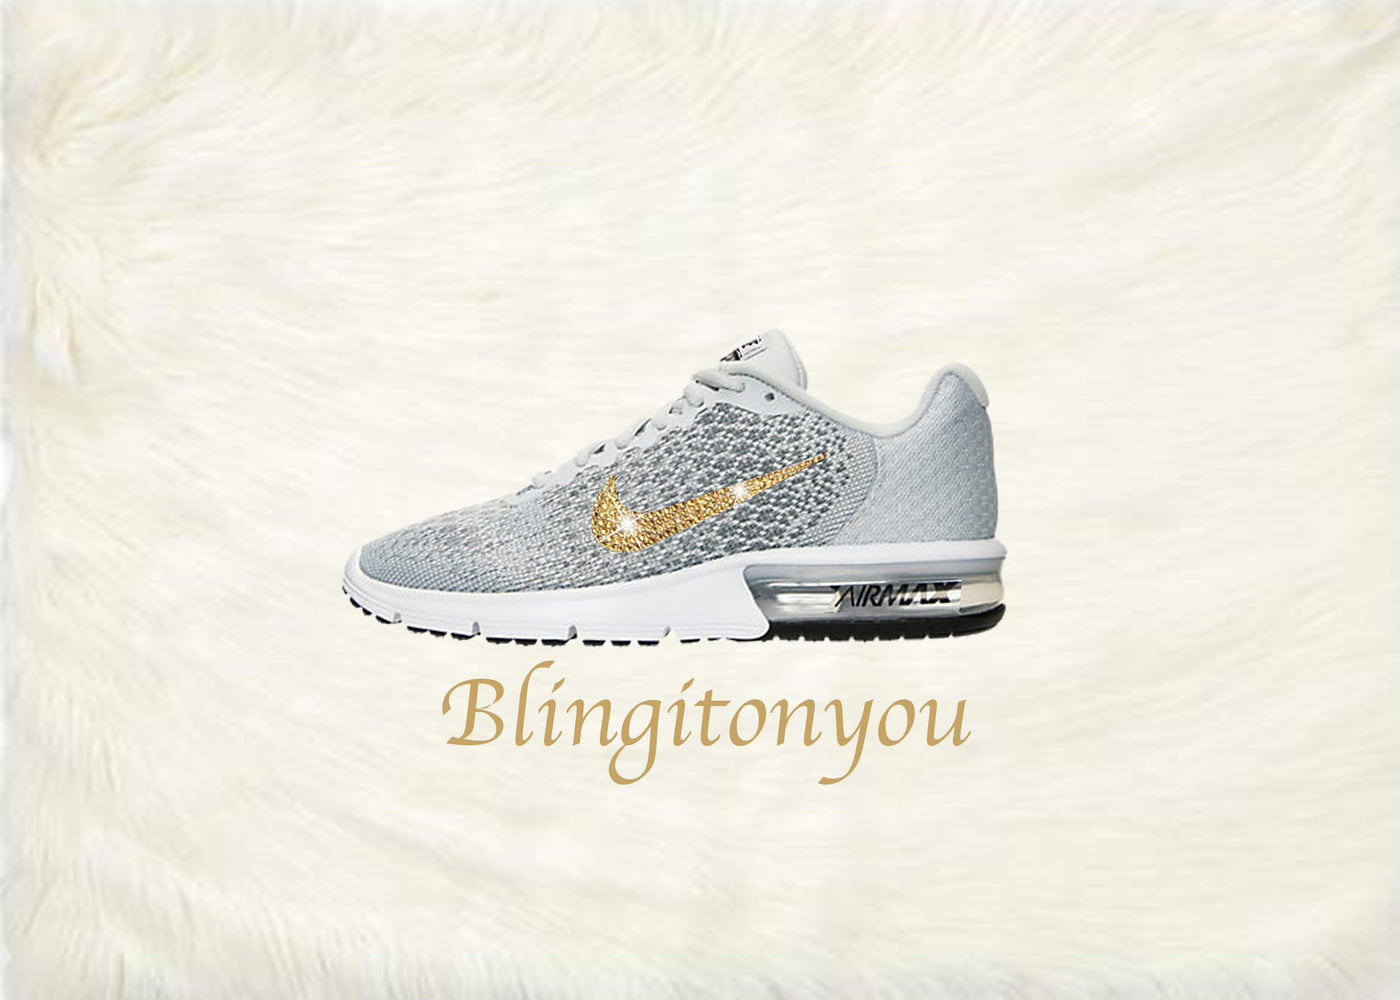 ... Swarovski Nike Air Max Sequent 2 Shoes Grey Blinged Out With Gold  Swarovski Crystals - Nike ... 4695670b38